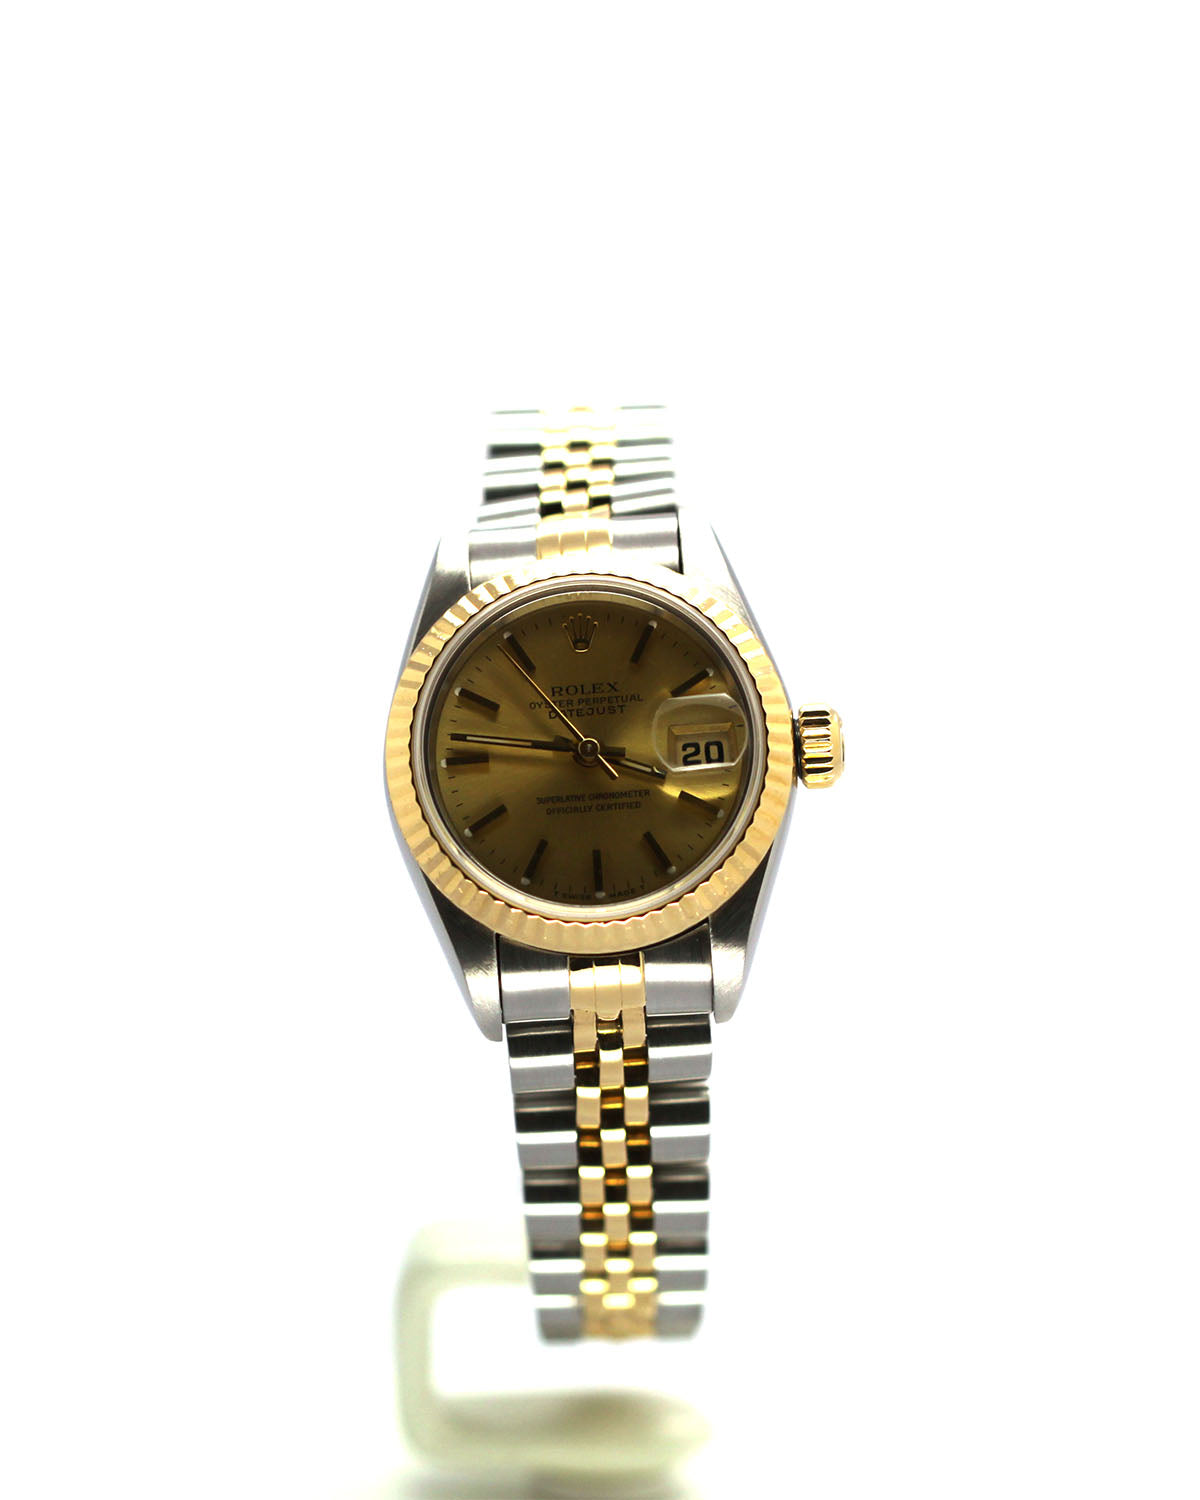 ROLEX DATEJUST 69173 TWO TONE CHAMPAGNE STICK JUBILEE